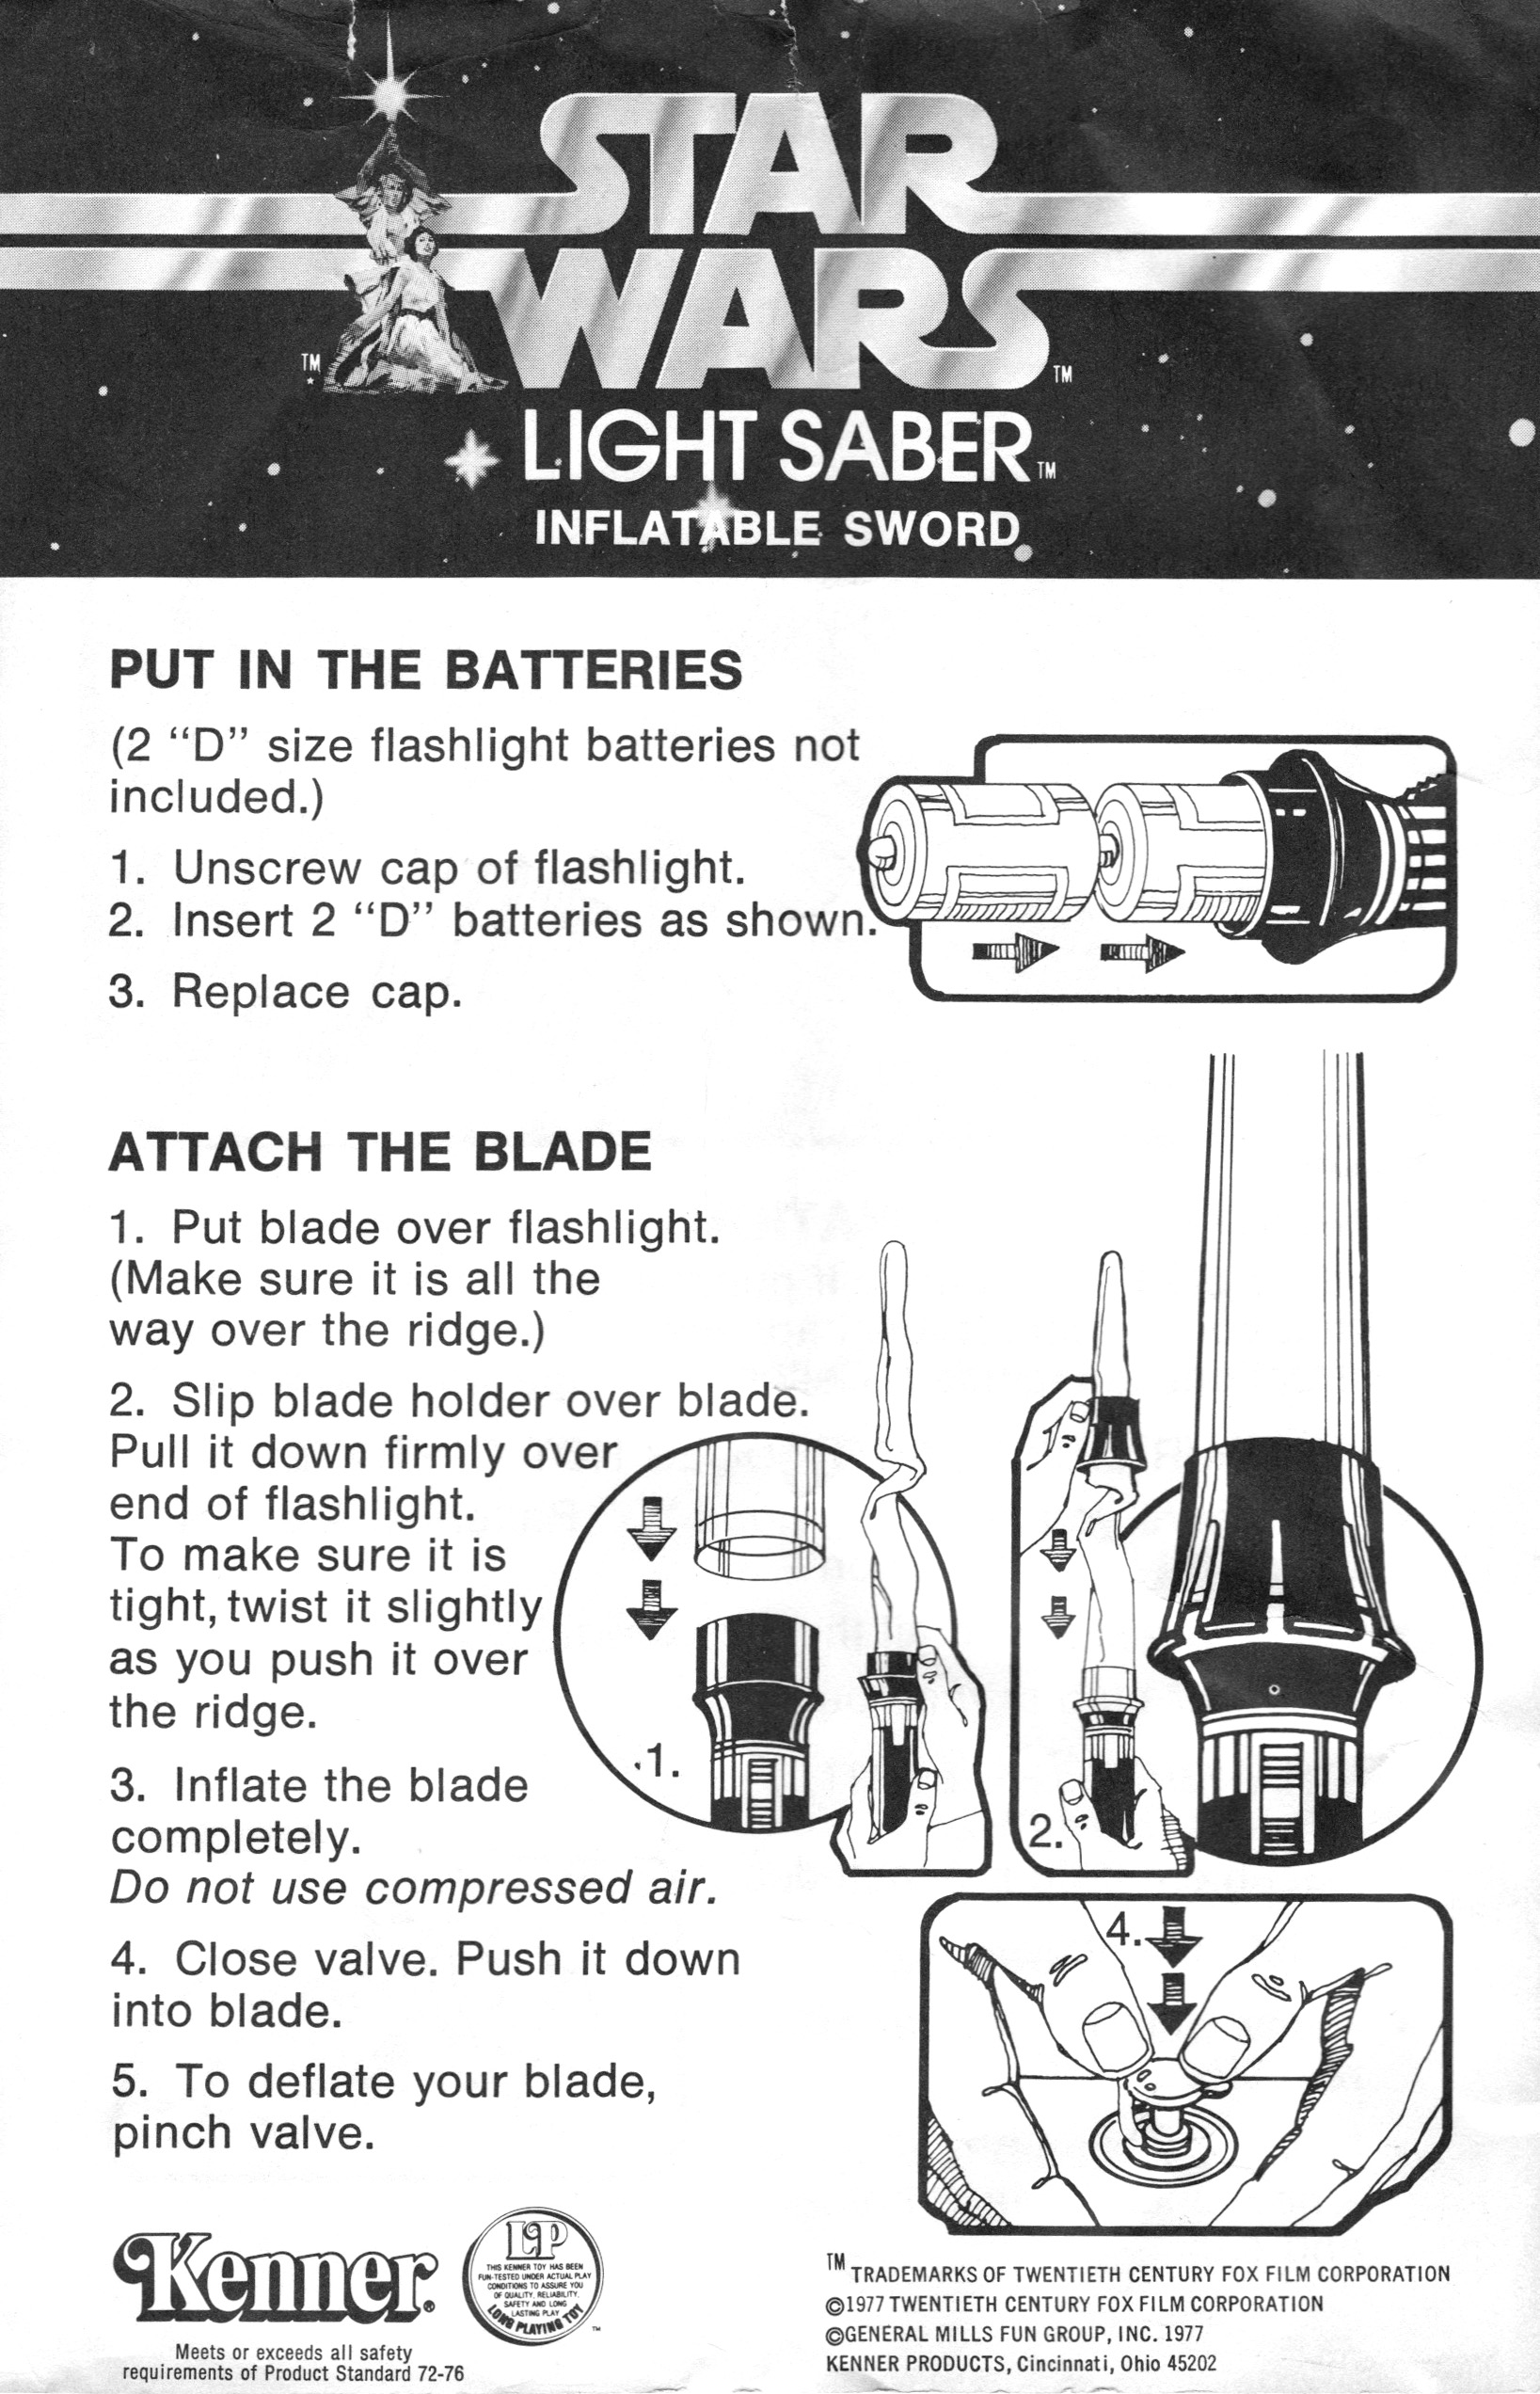 Kenner Toy Lightsaber Instructions